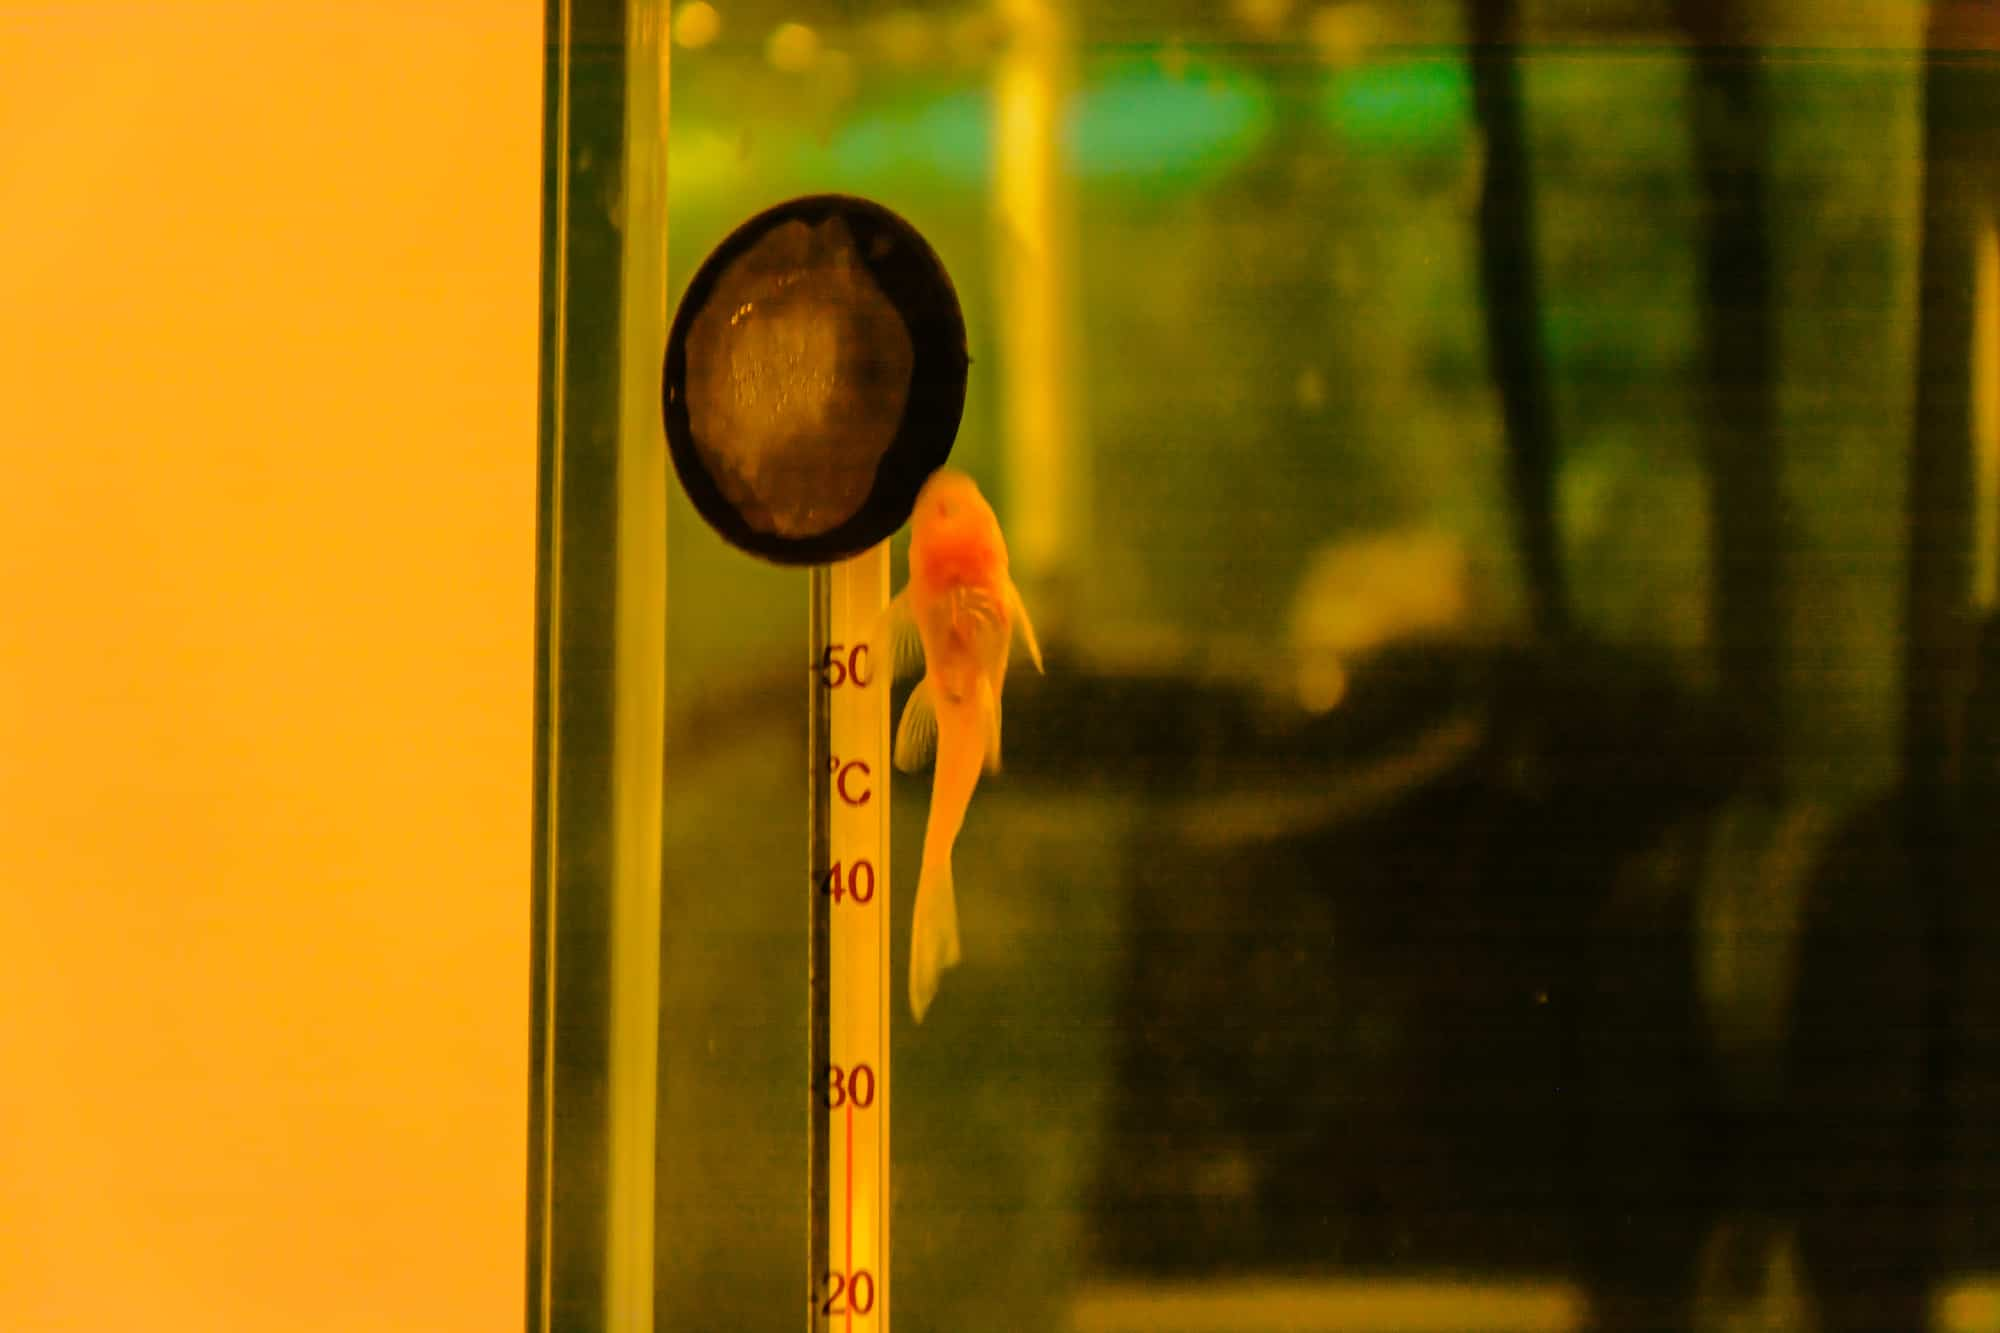 A small catfish ancistrus stuck to the glass of the aquarium near the thermometer